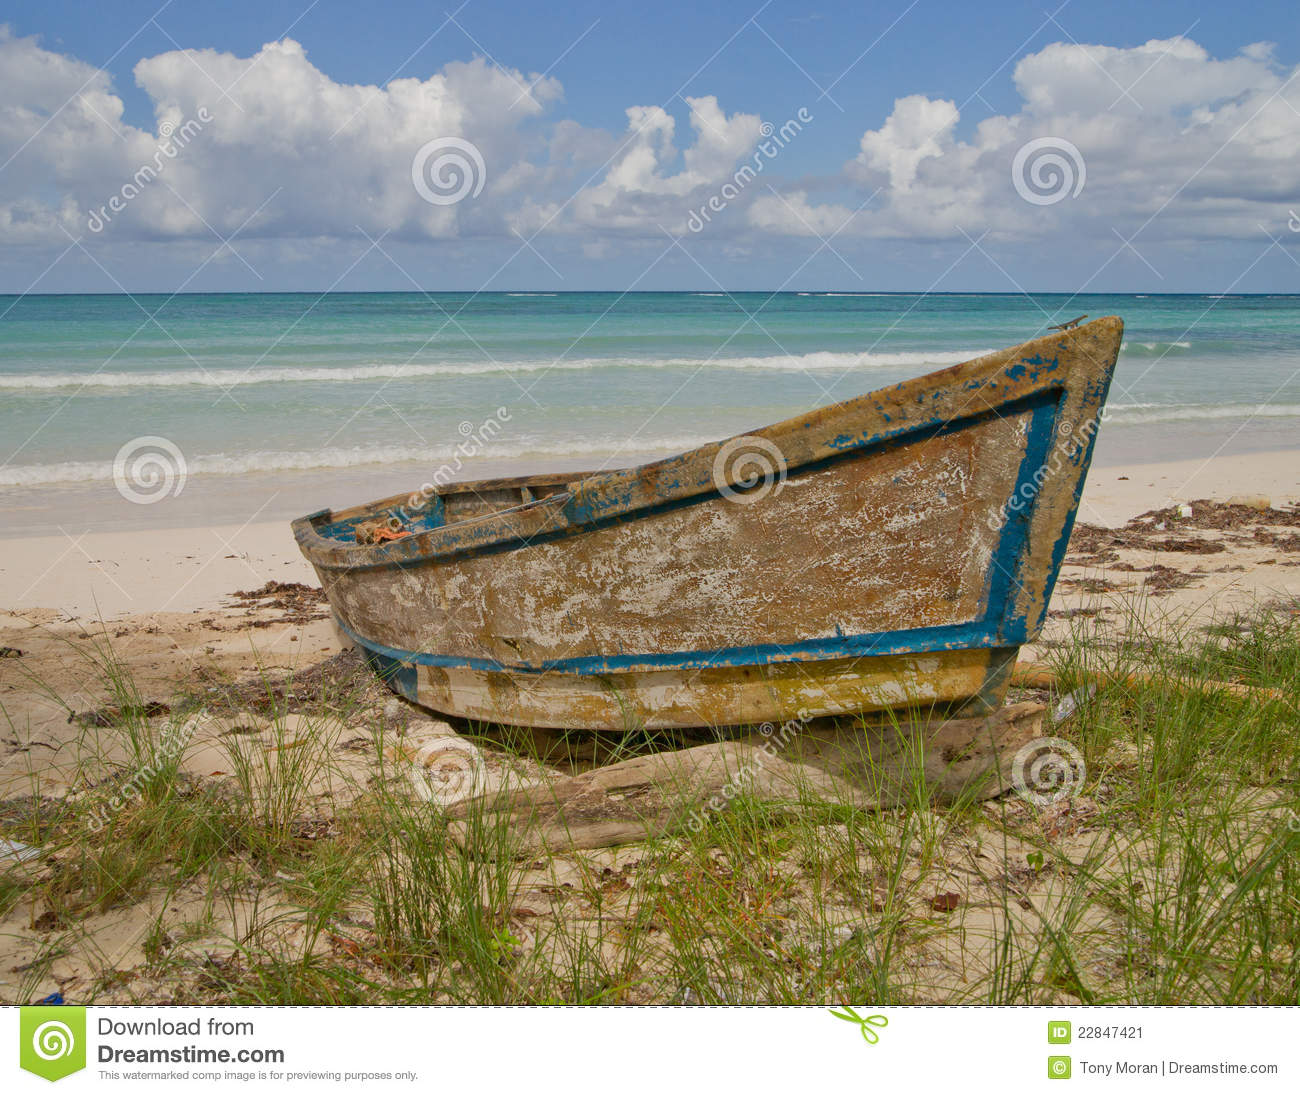 Old Fishing Boats On Beach: Old Boat On Jamaican Beach Stock Image